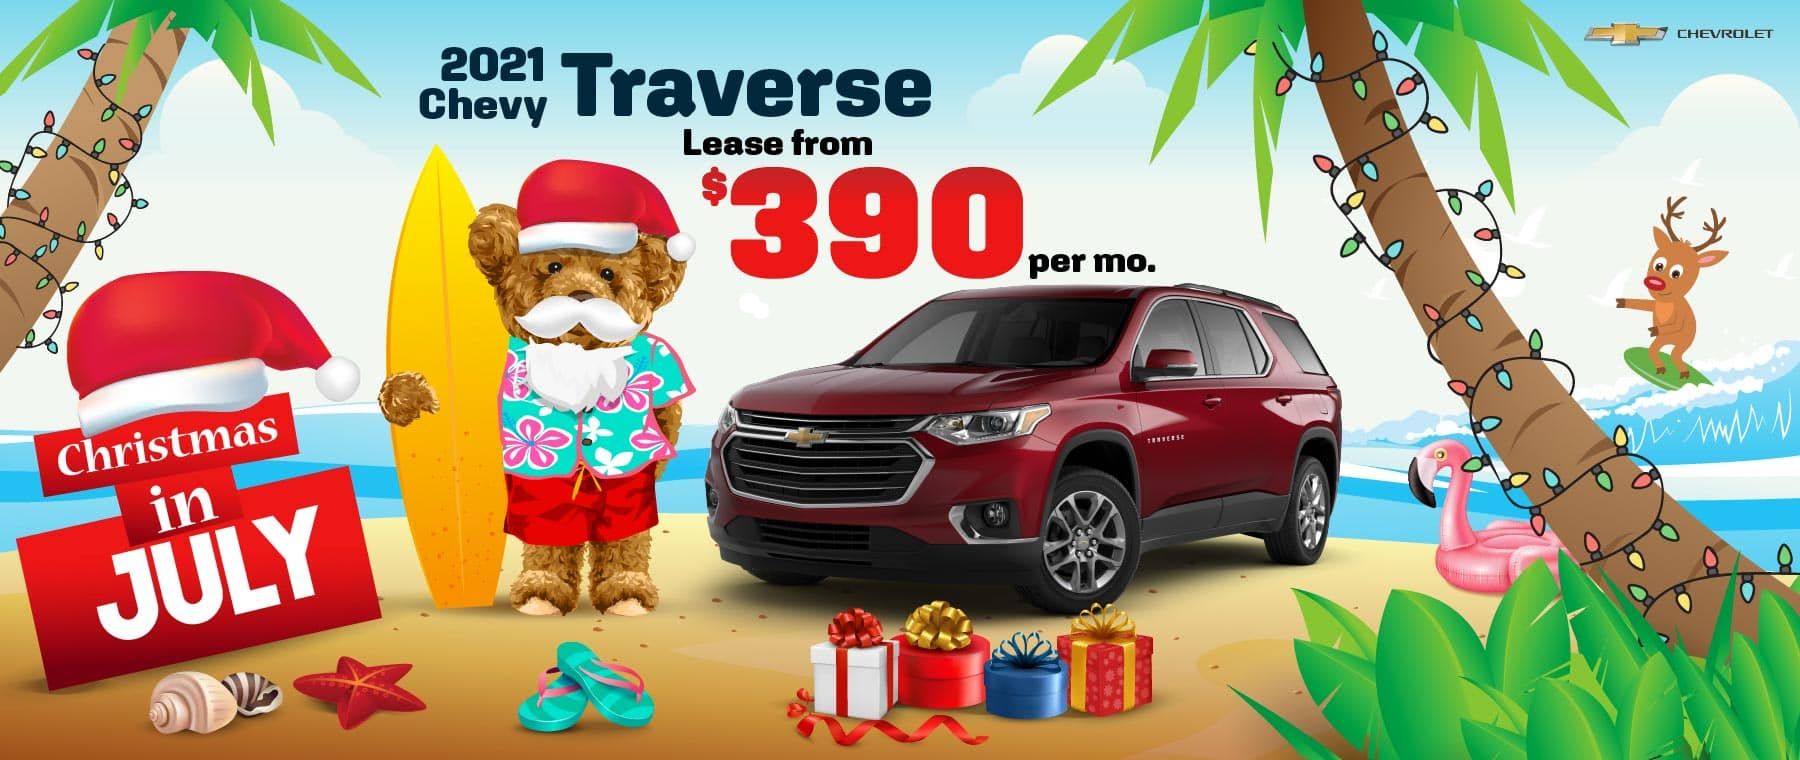 2021 Chevy Traverse - lease from $390 per month